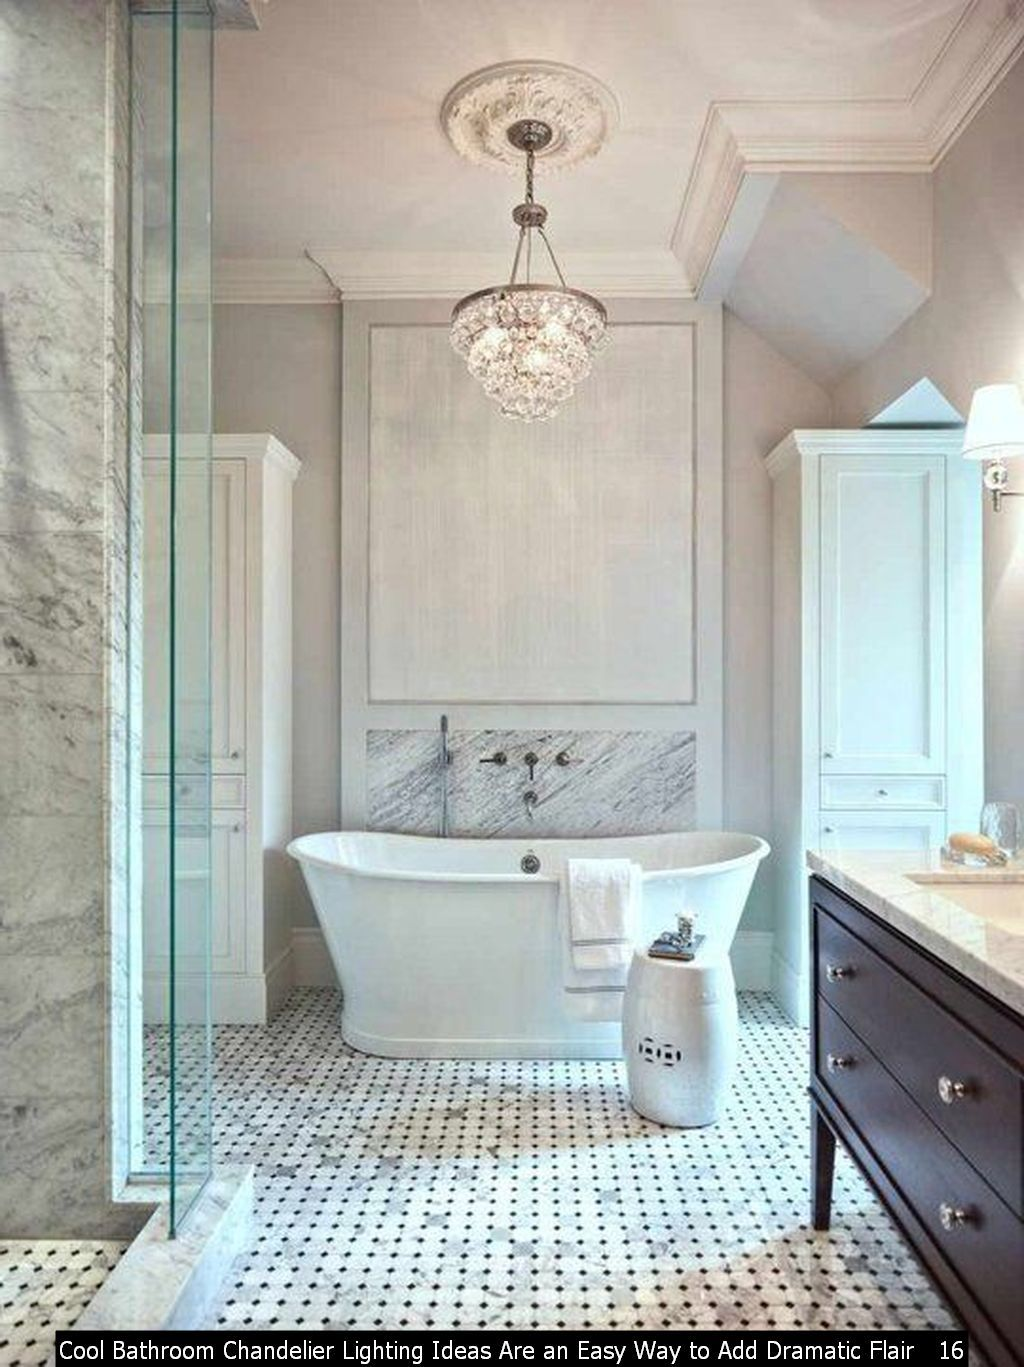 45 Cool Bathroom Chandelier Lighting Ideas Are An Easy Way To Add Dramatic Flair Trenduhome Bathroom Chandelier Lighting Bathroom Chandelier Small Bathroom Chandelier